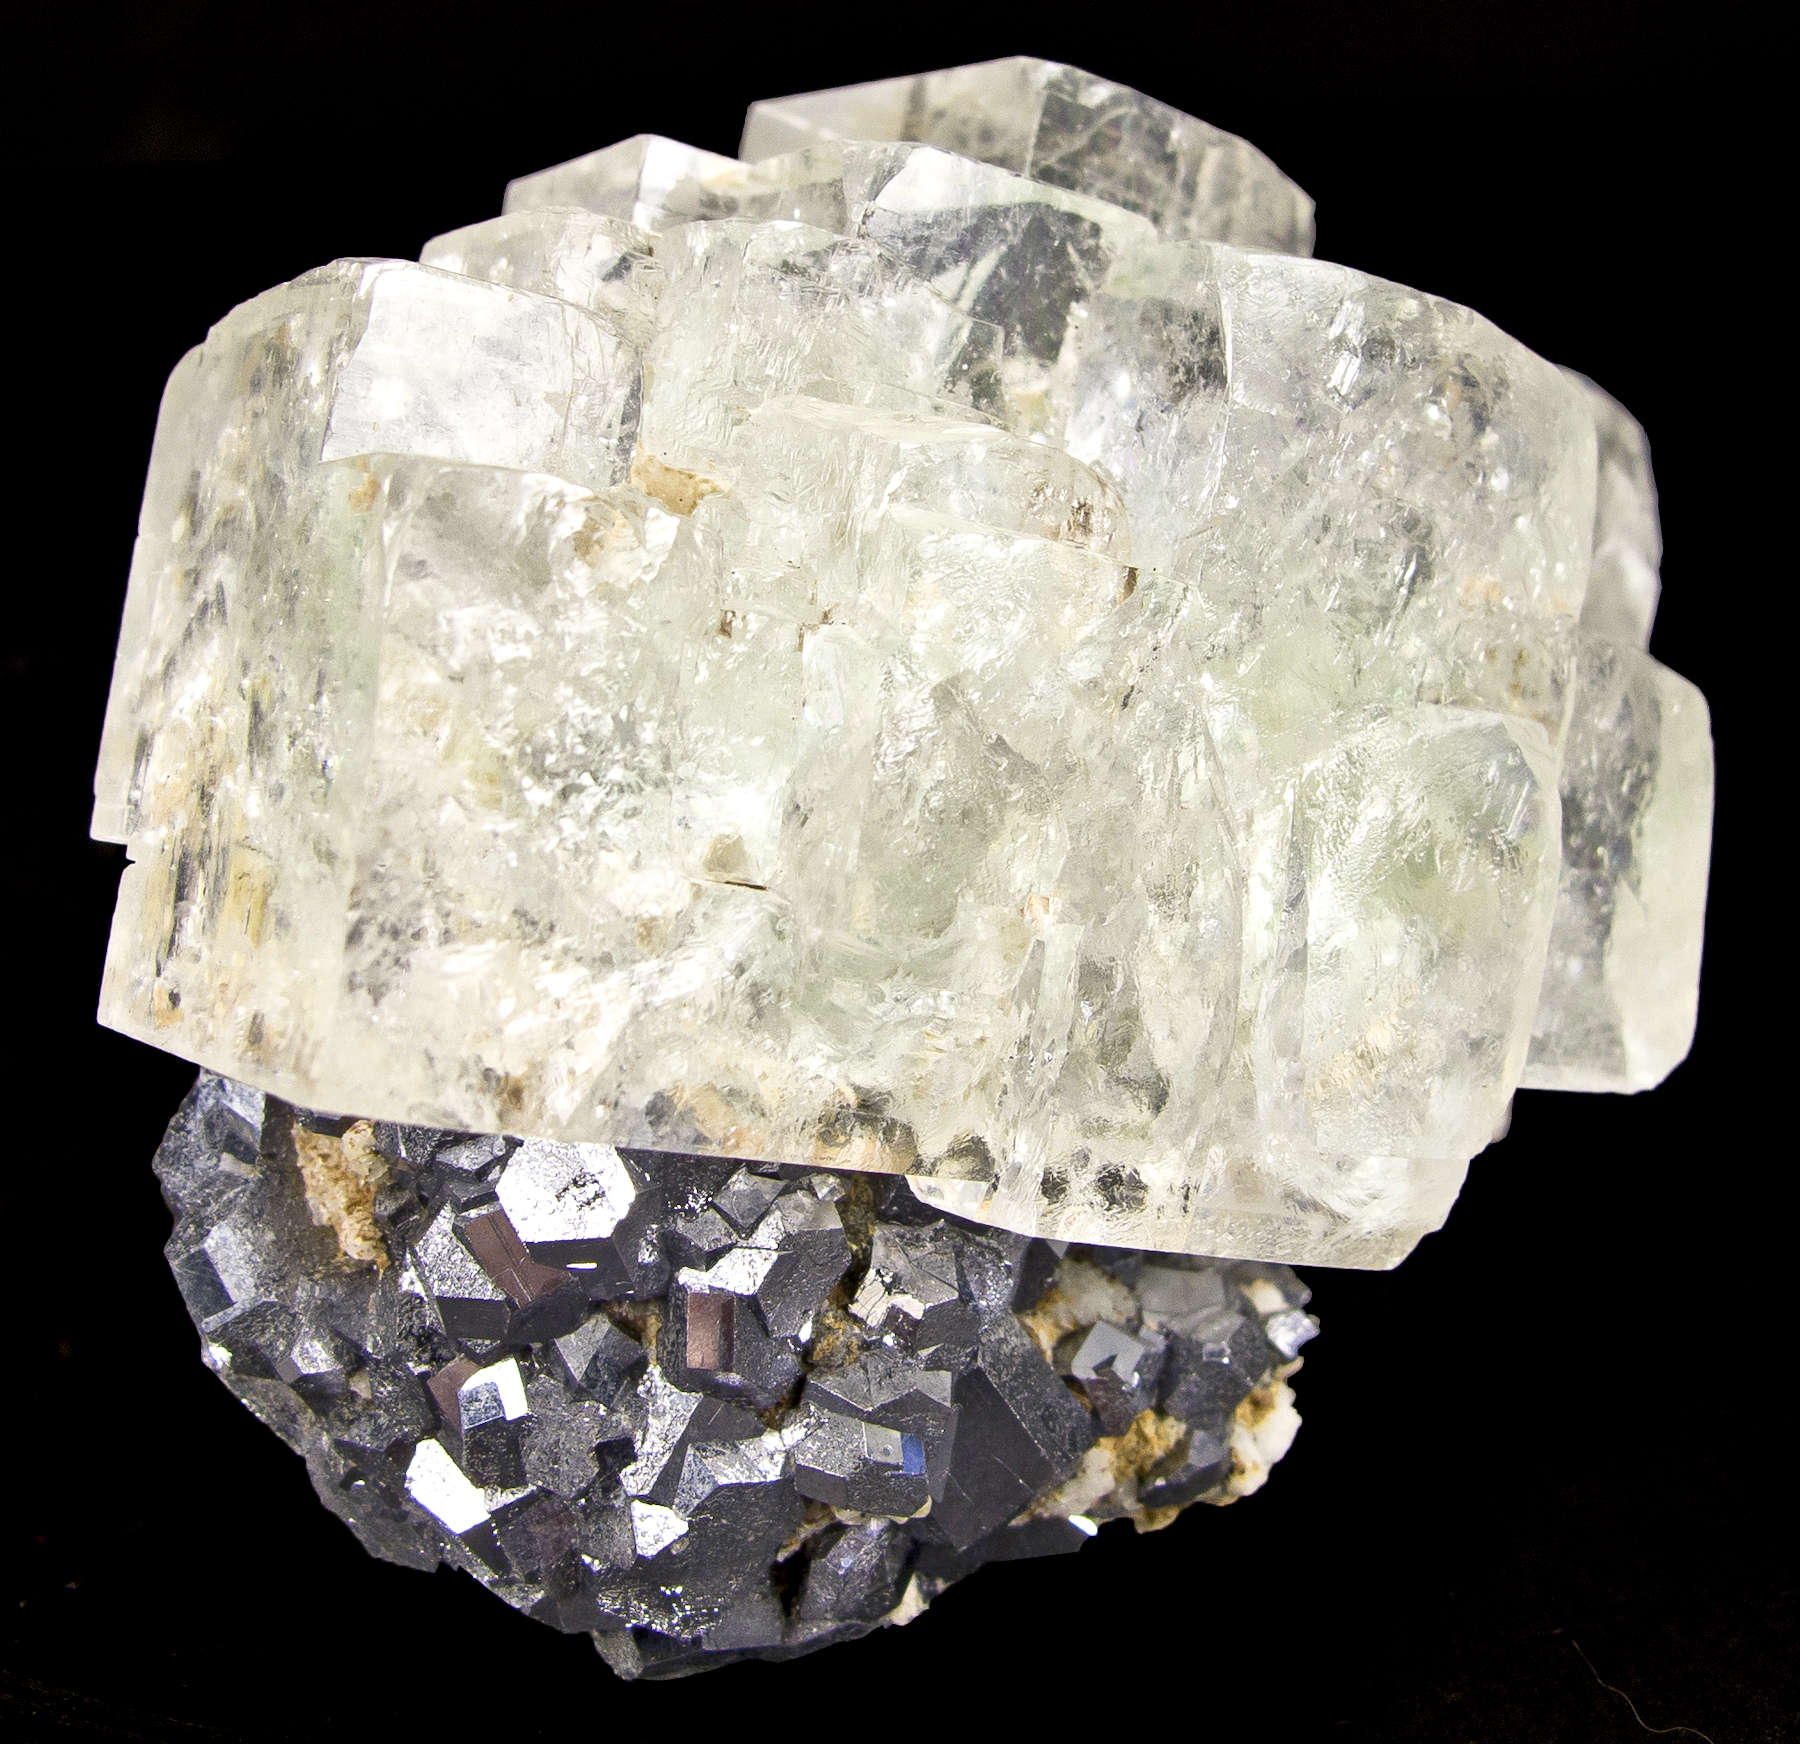 Superbly crystallized crust splendent metallic silvery galena crystals